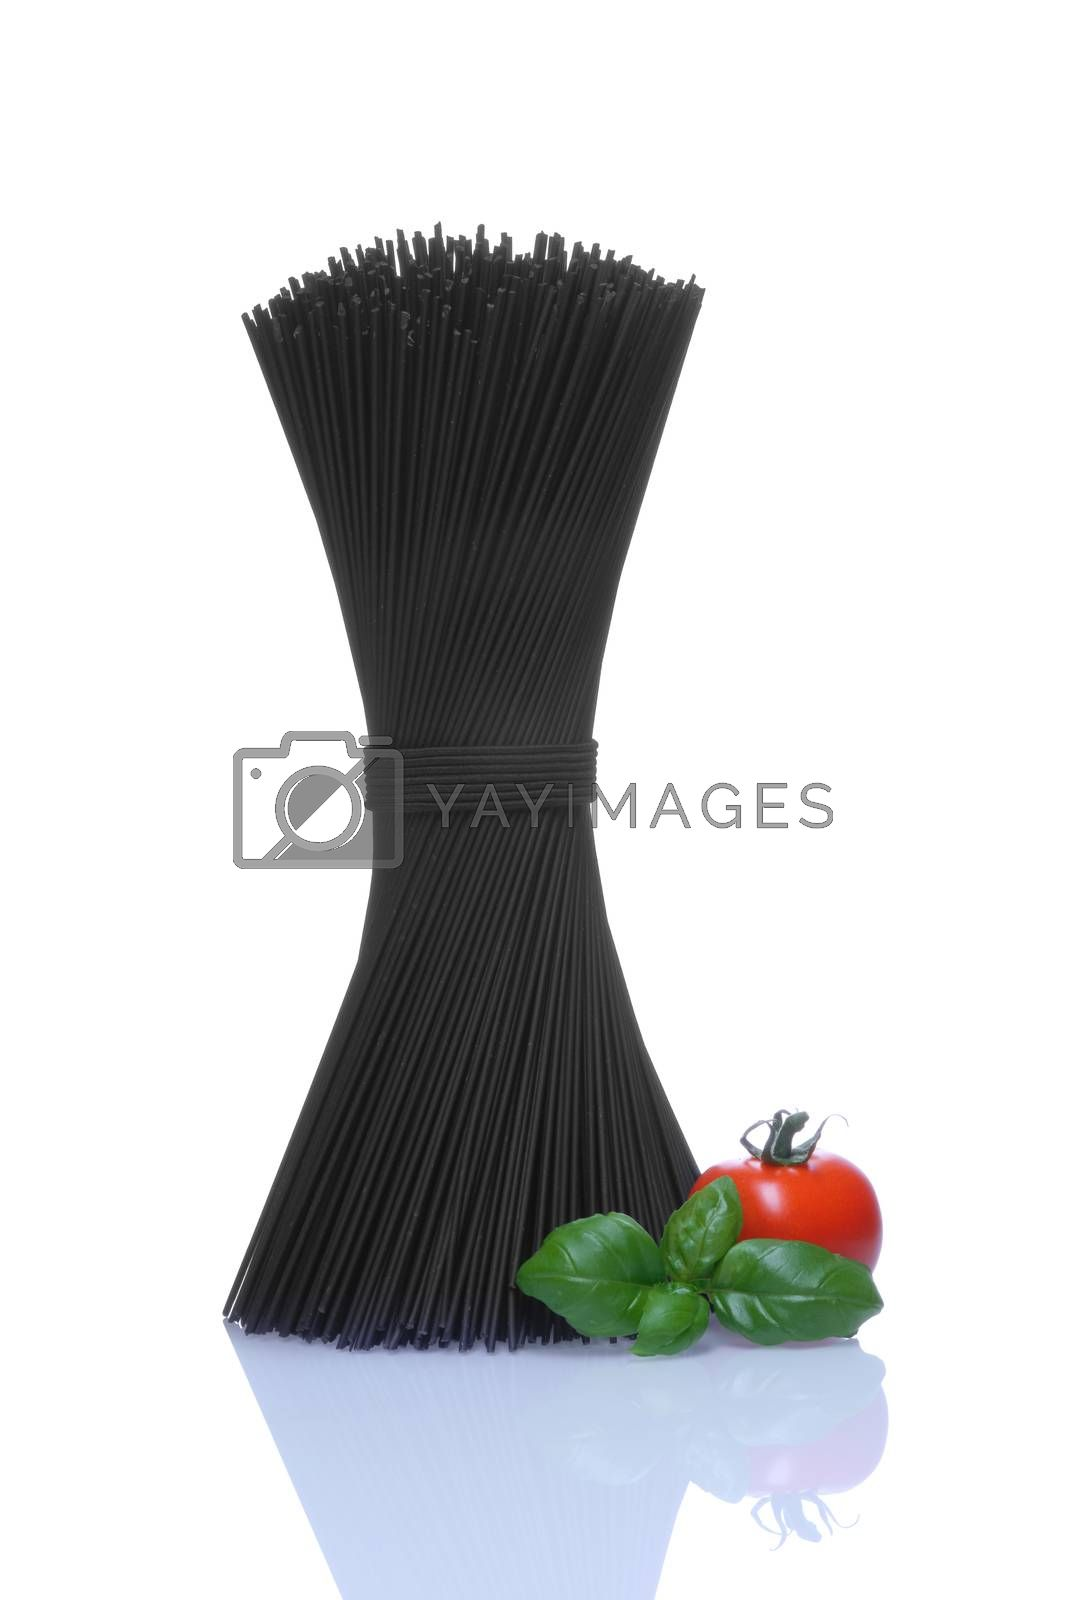 Black spaghetti with basel leaves and red tomato on white background.